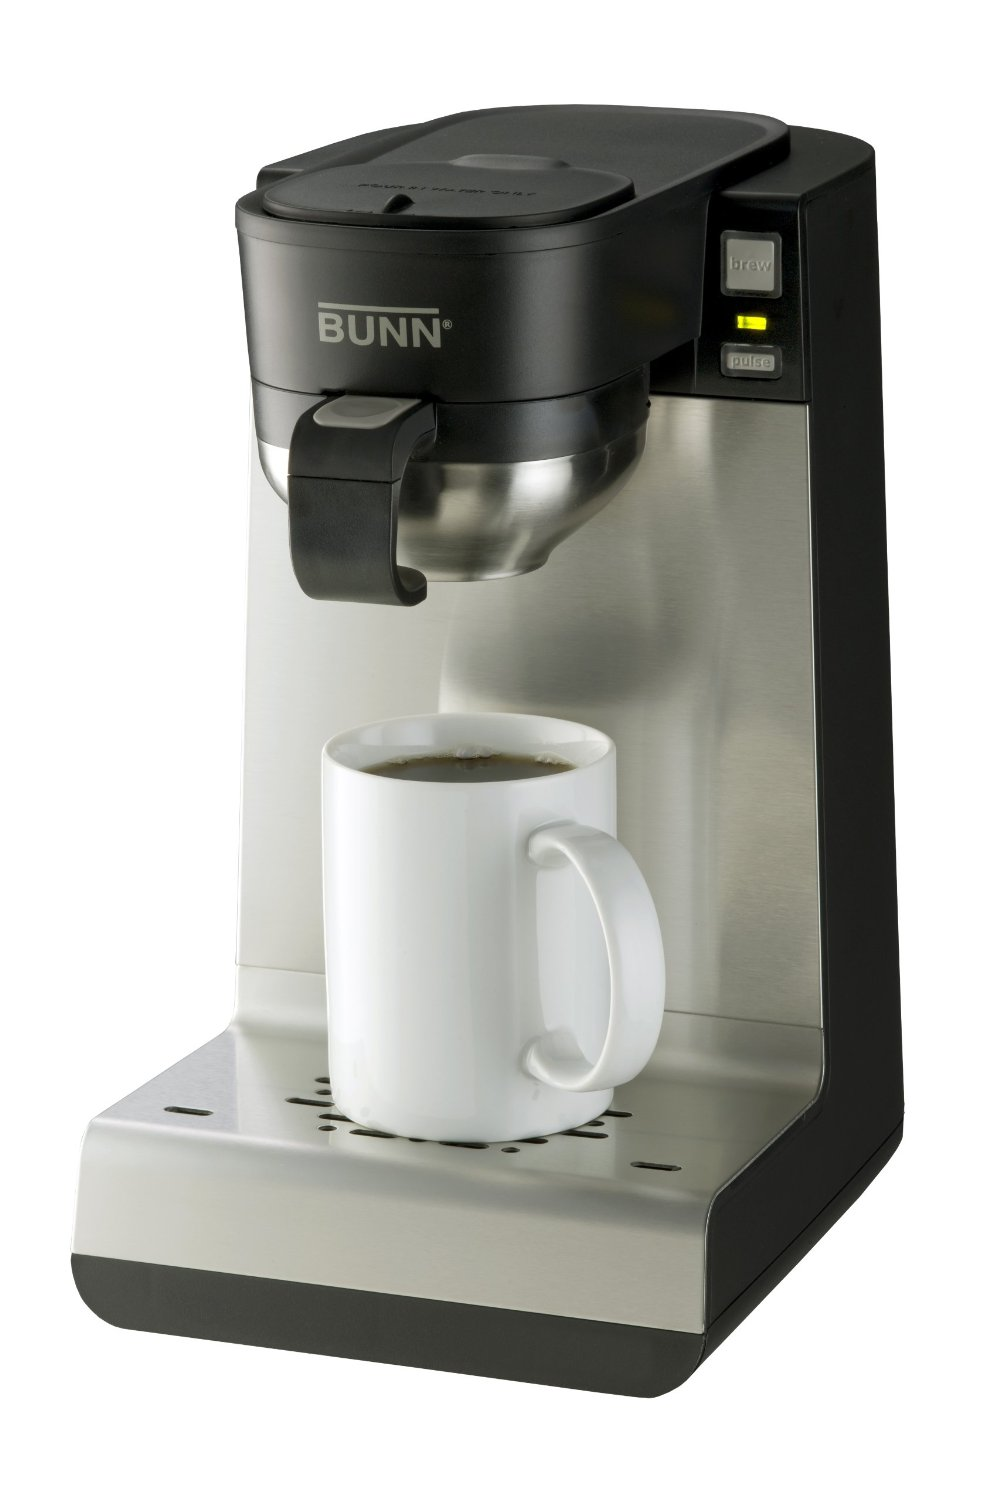 Electronic Coffee Machines For Business Use coffee machines for business small rank very high on utility in fact due to their extremely handy and easy use nature they are increasingly being u